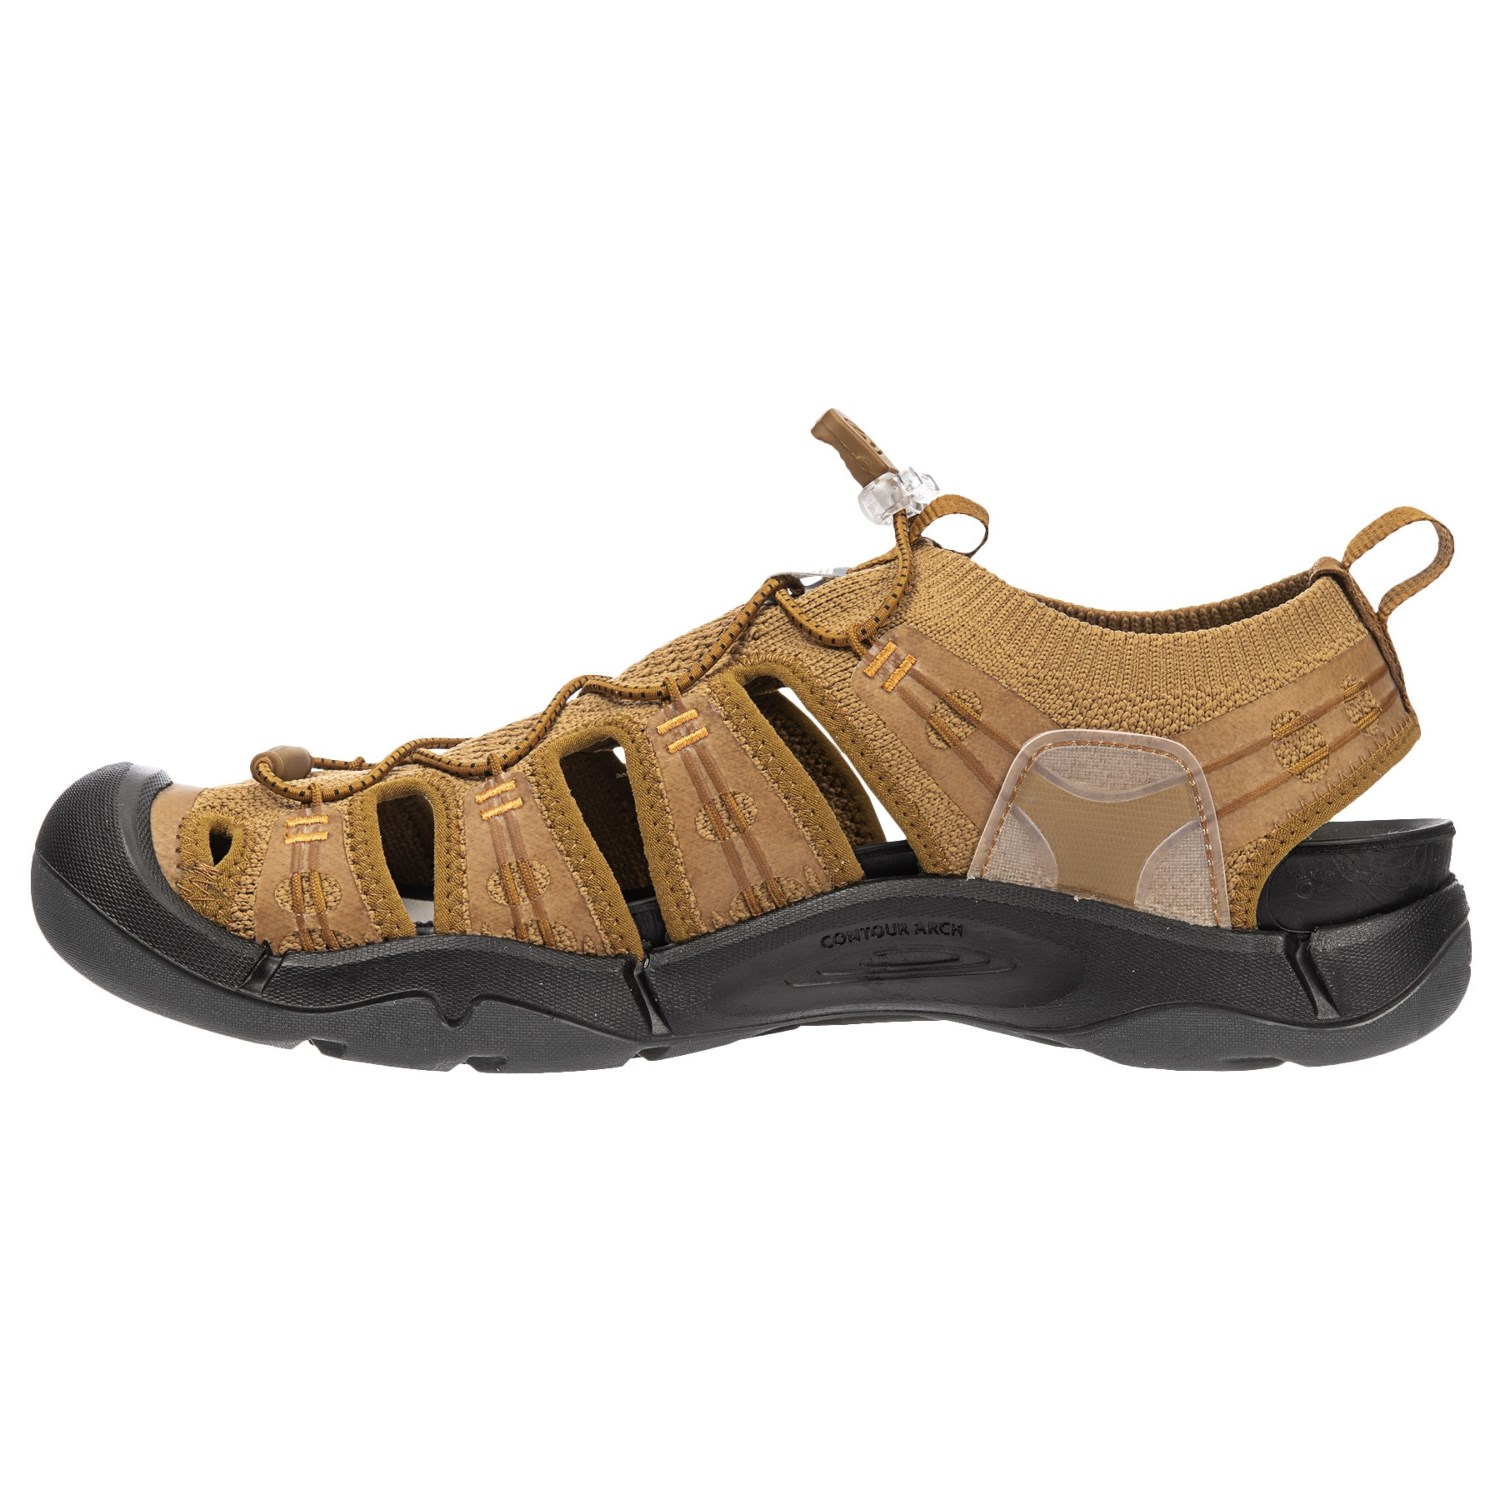 8971202f8fa7 Keen Evofit One Sandals (For Men) - Save 53%